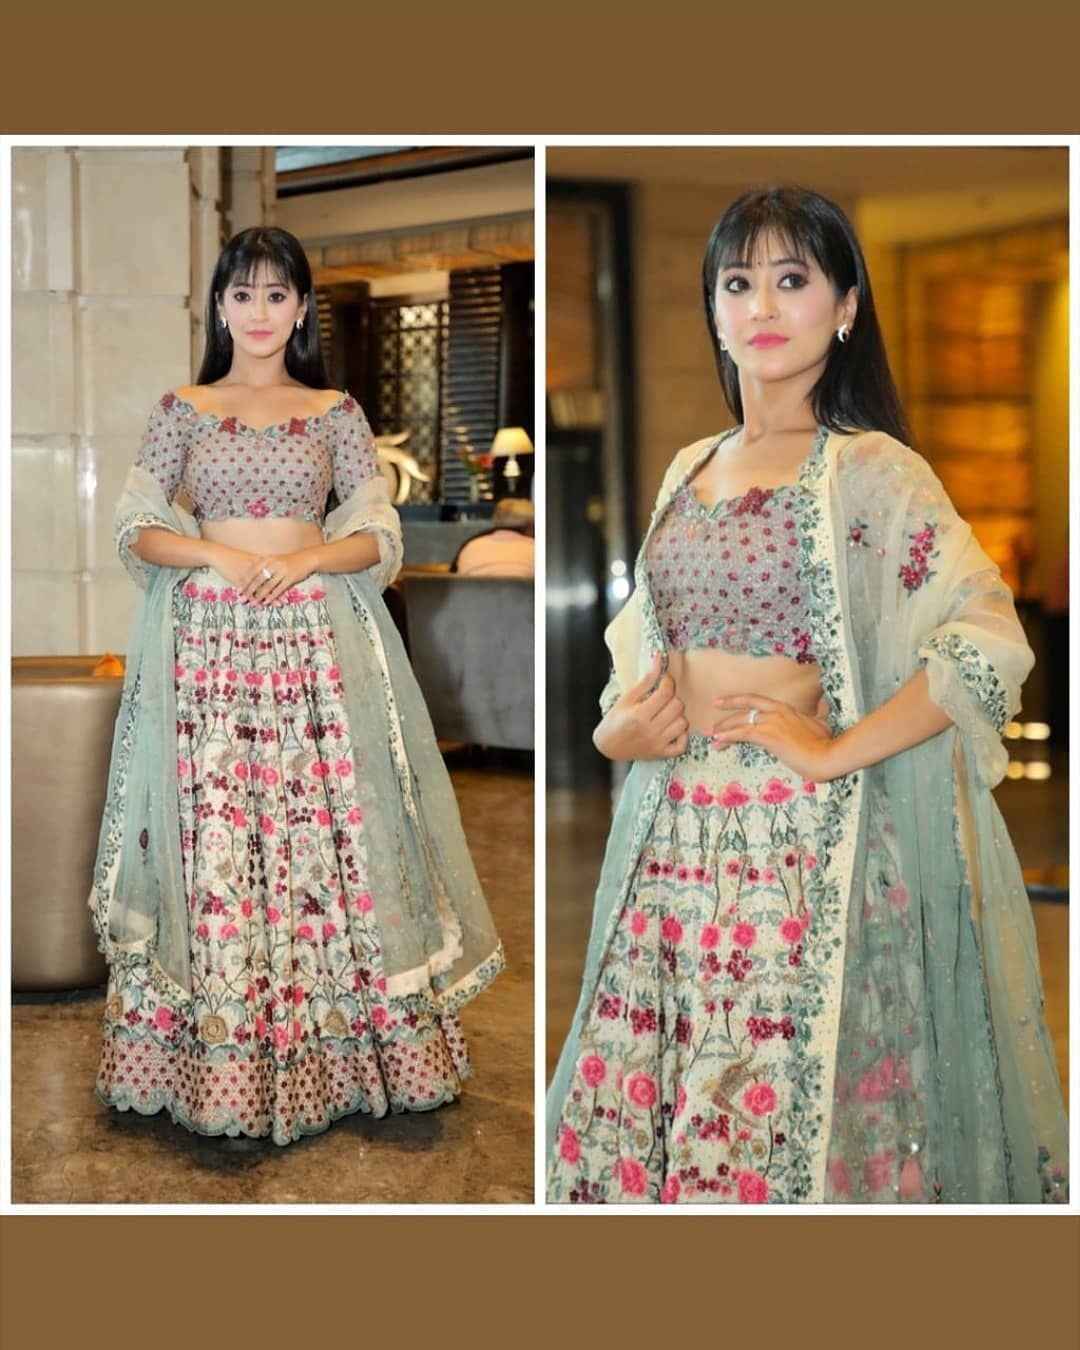 Pin By Nehagaur On Indian Fashion Traditional Outfits Indian Designer Outfits Designer Dresses Indian,Summertime Wedding Guest Dresses 2020